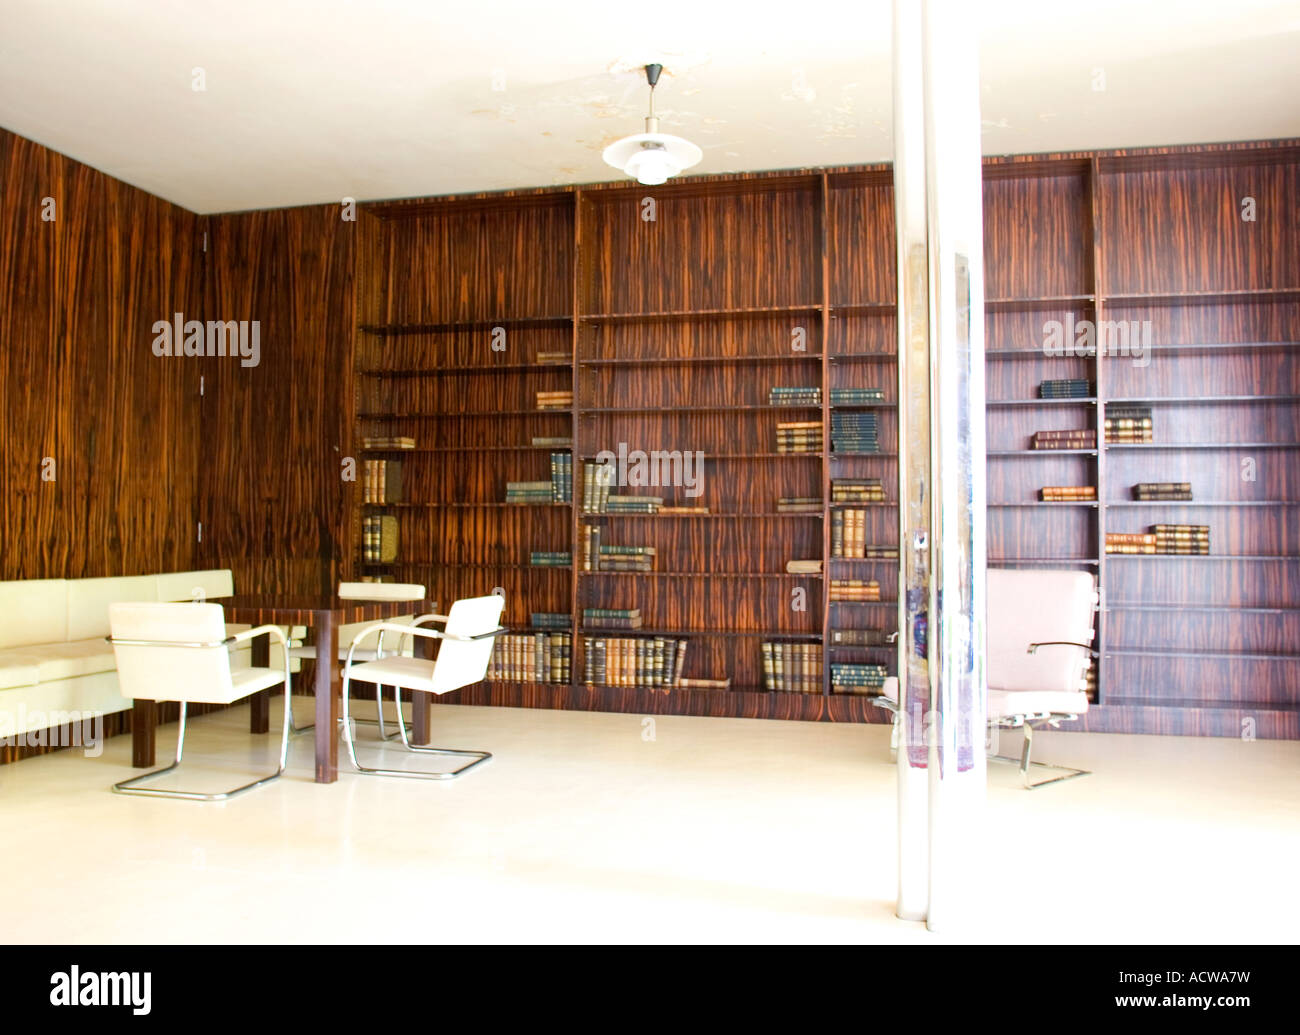 tugendhat house brno czech republic mies van der rohe architect stock photo 13234236 alamy. Black Bedroom Furniture Sets. Home Design Ideas